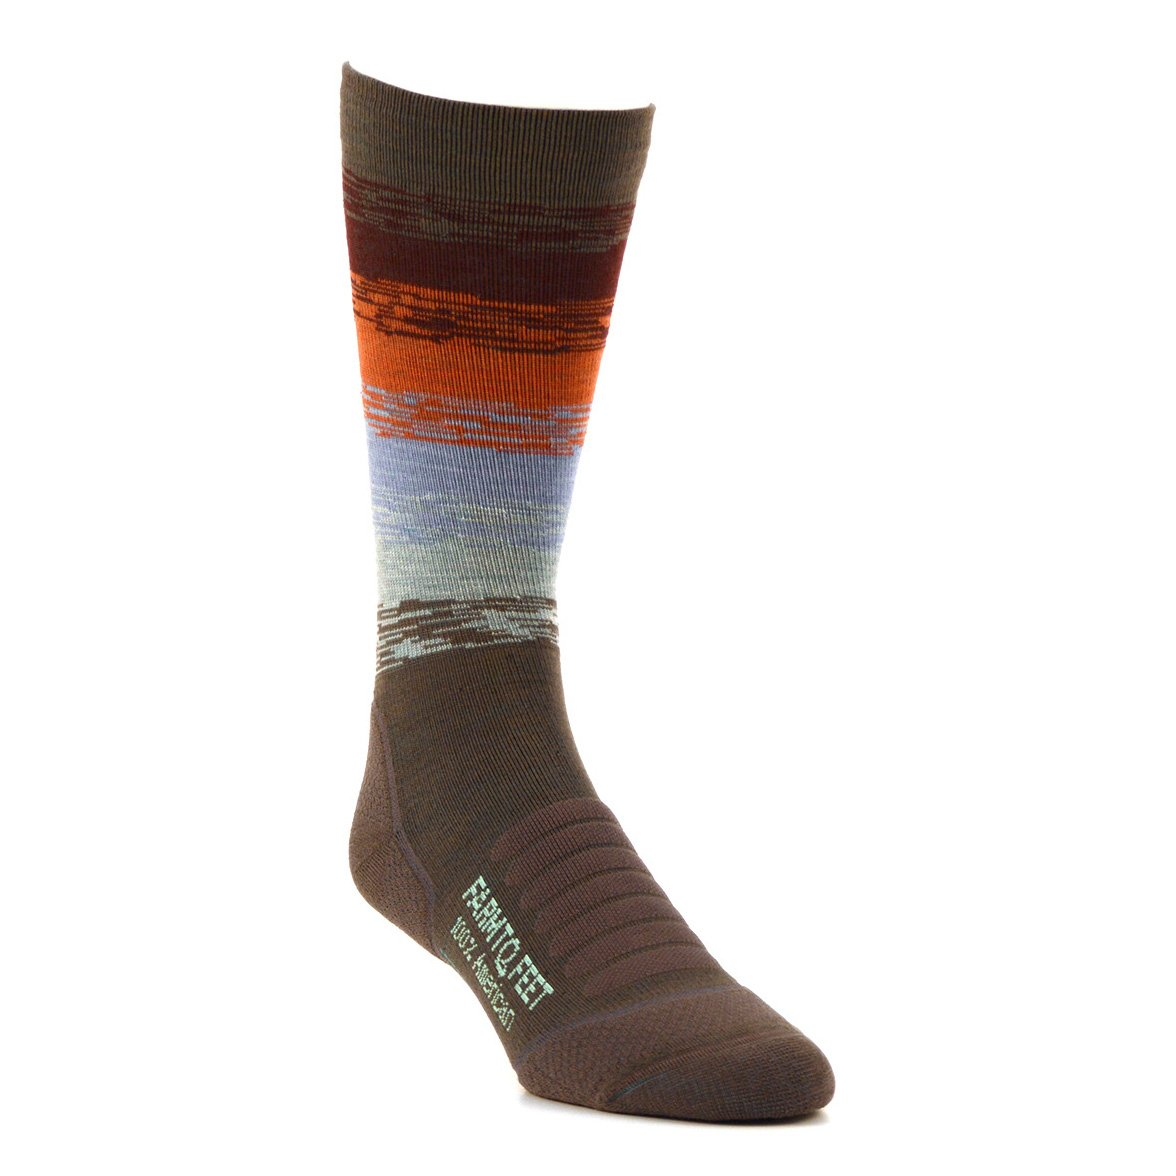 Farm to Feet Women's Ocracoke Sunrise Lighweight Hiking Crew Socks